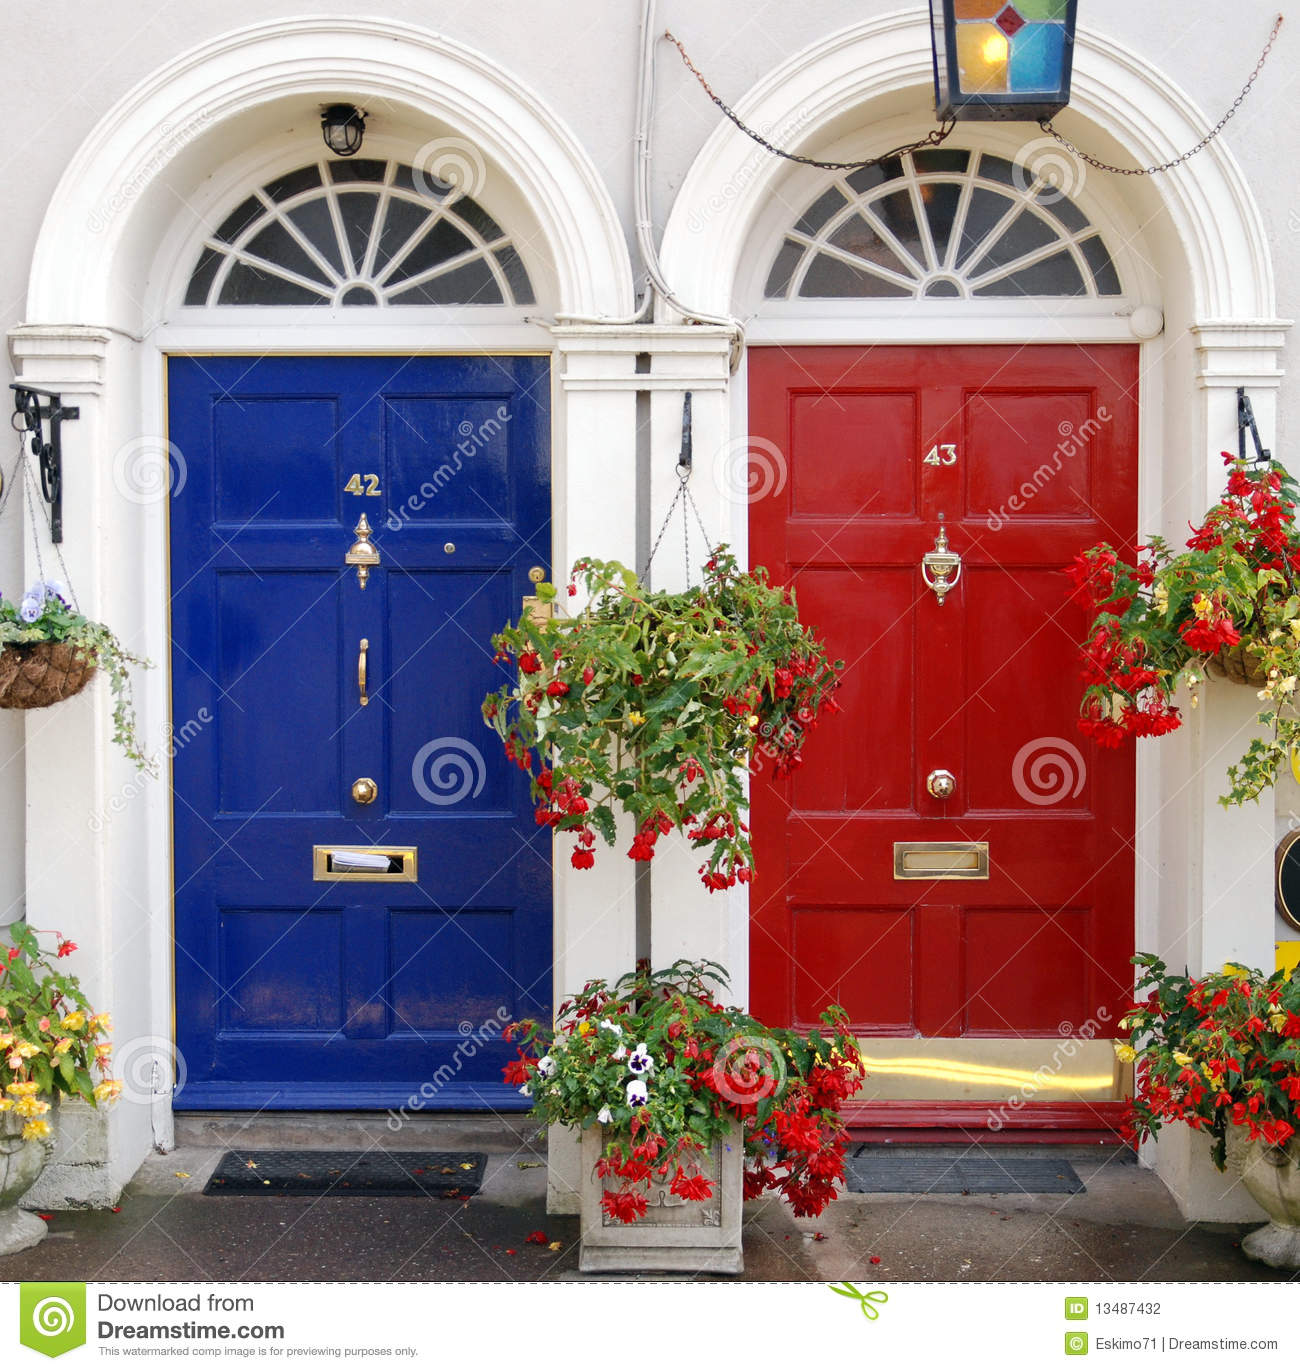 Entrance doors in Ireland Stock Photography & Doors of ireland stock image. Image of archway collage - 26618189